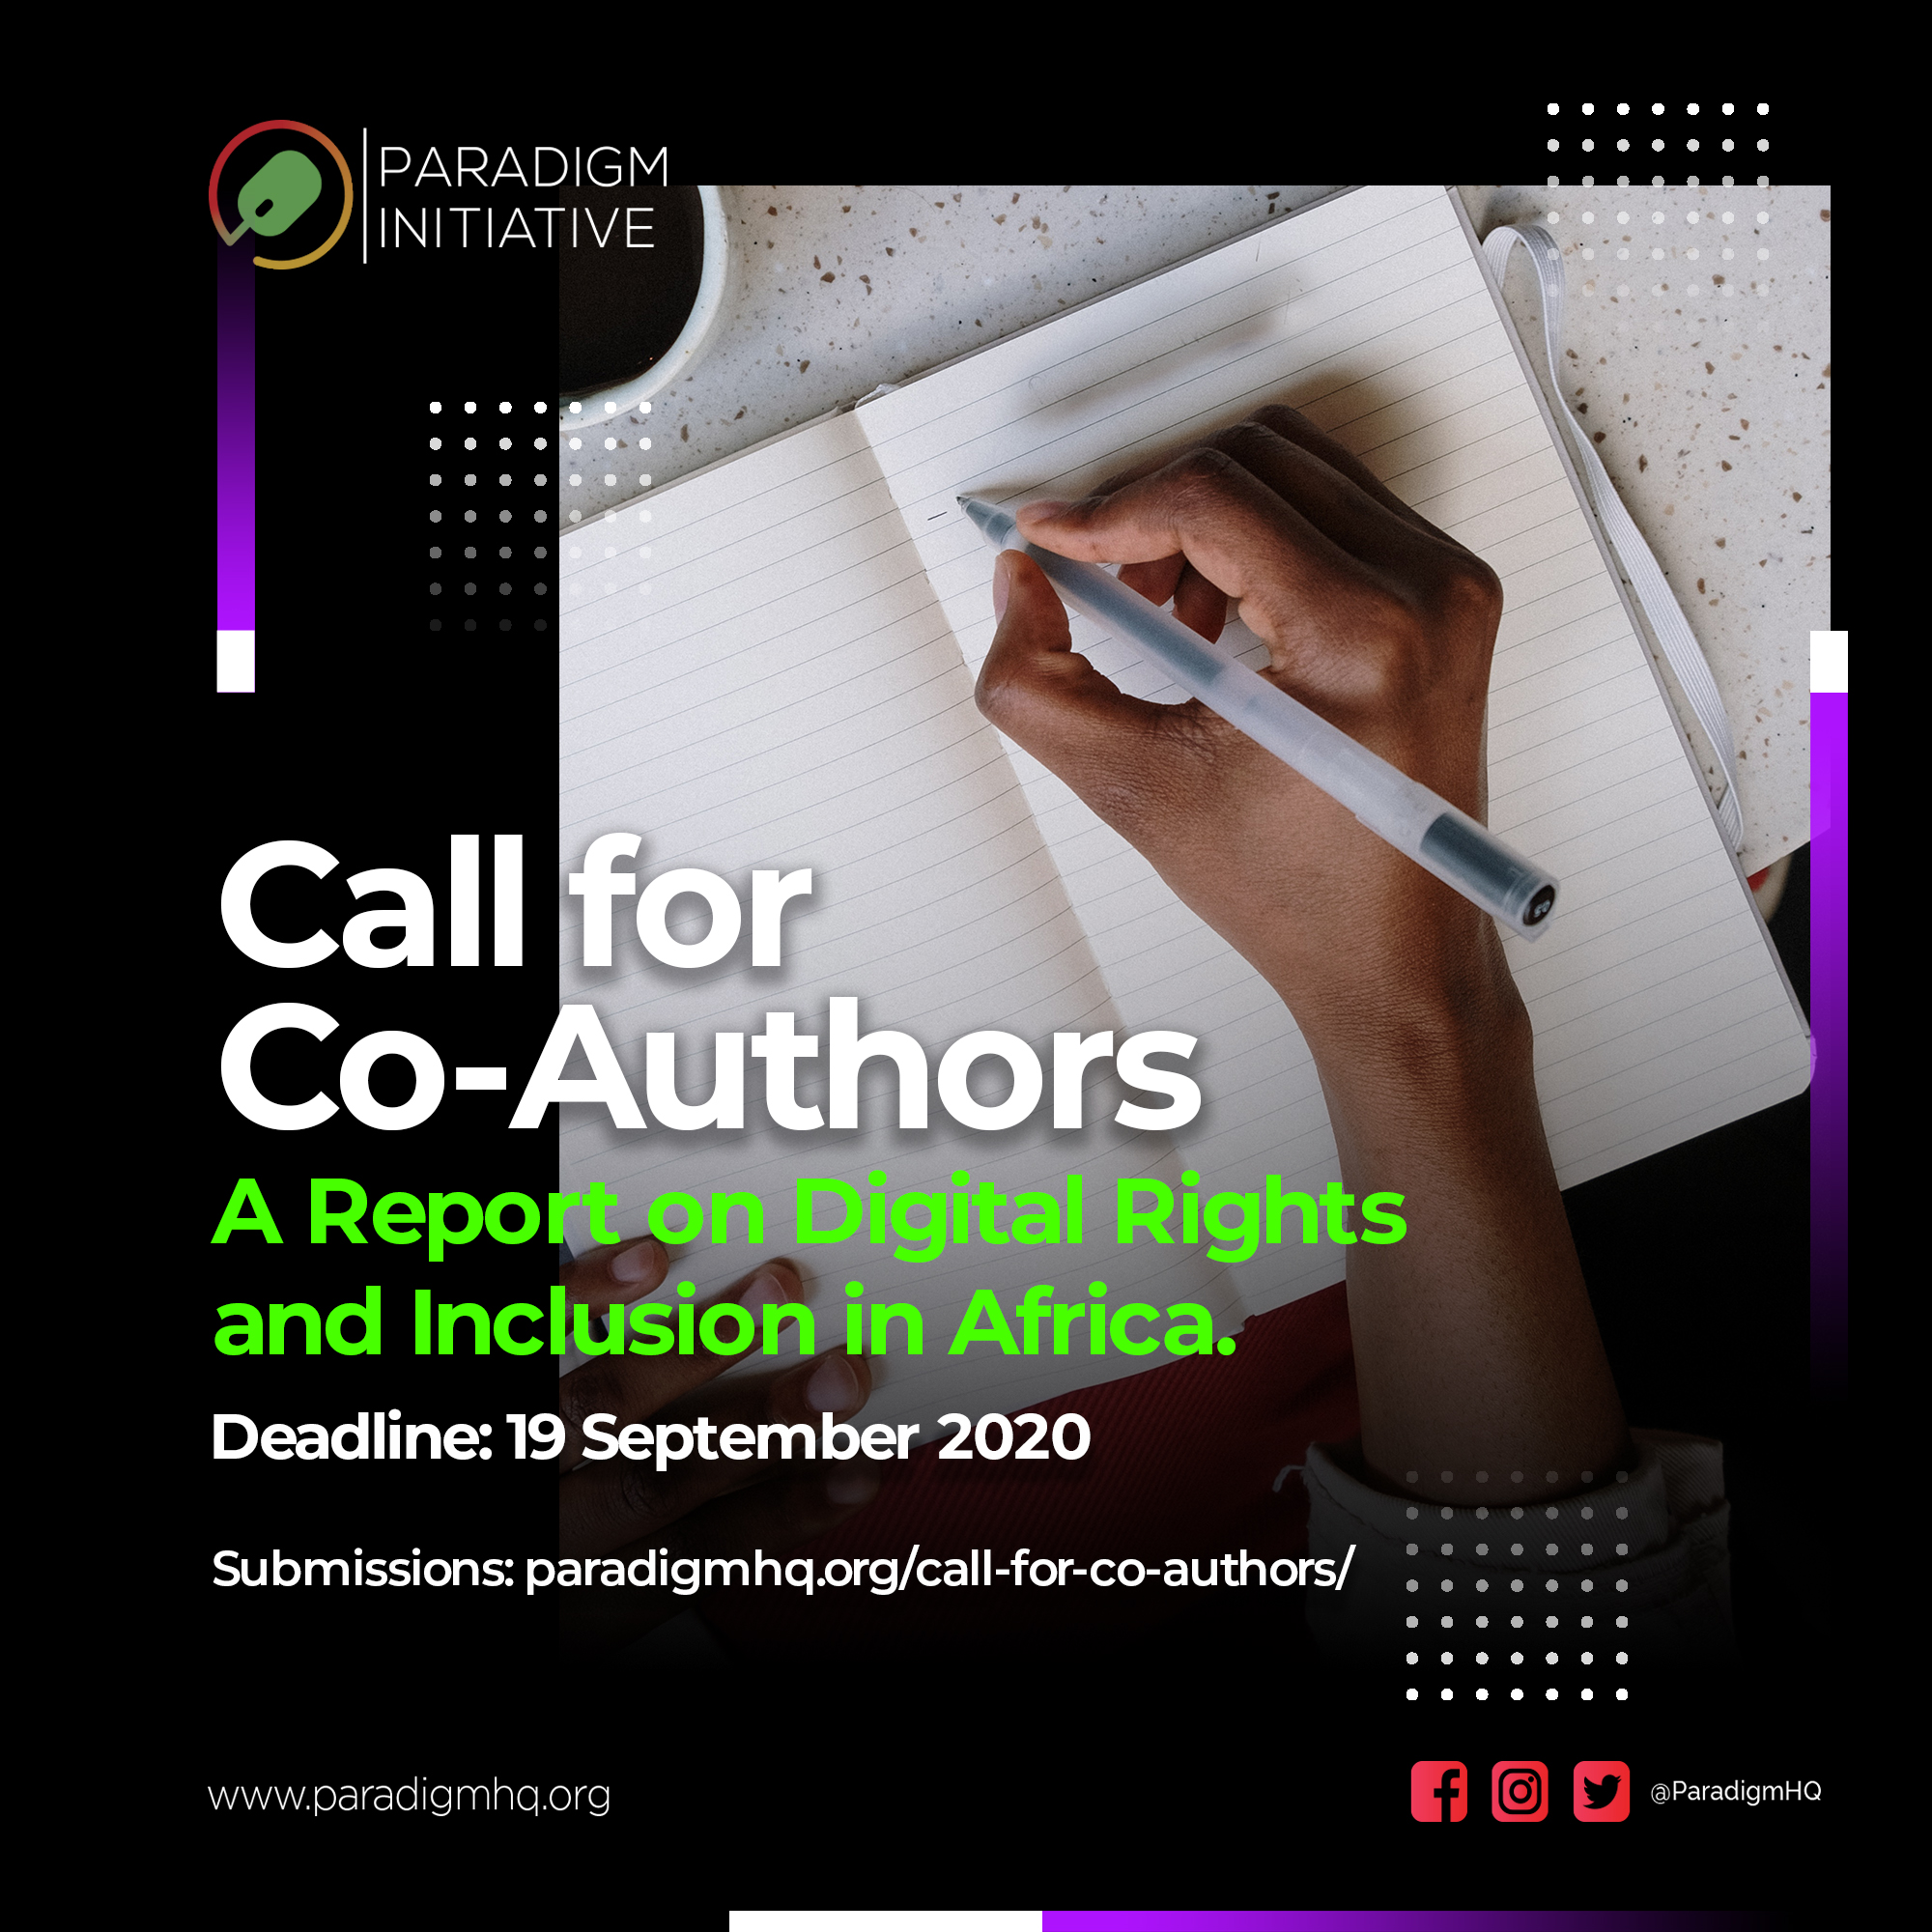 Call for Co-Authors